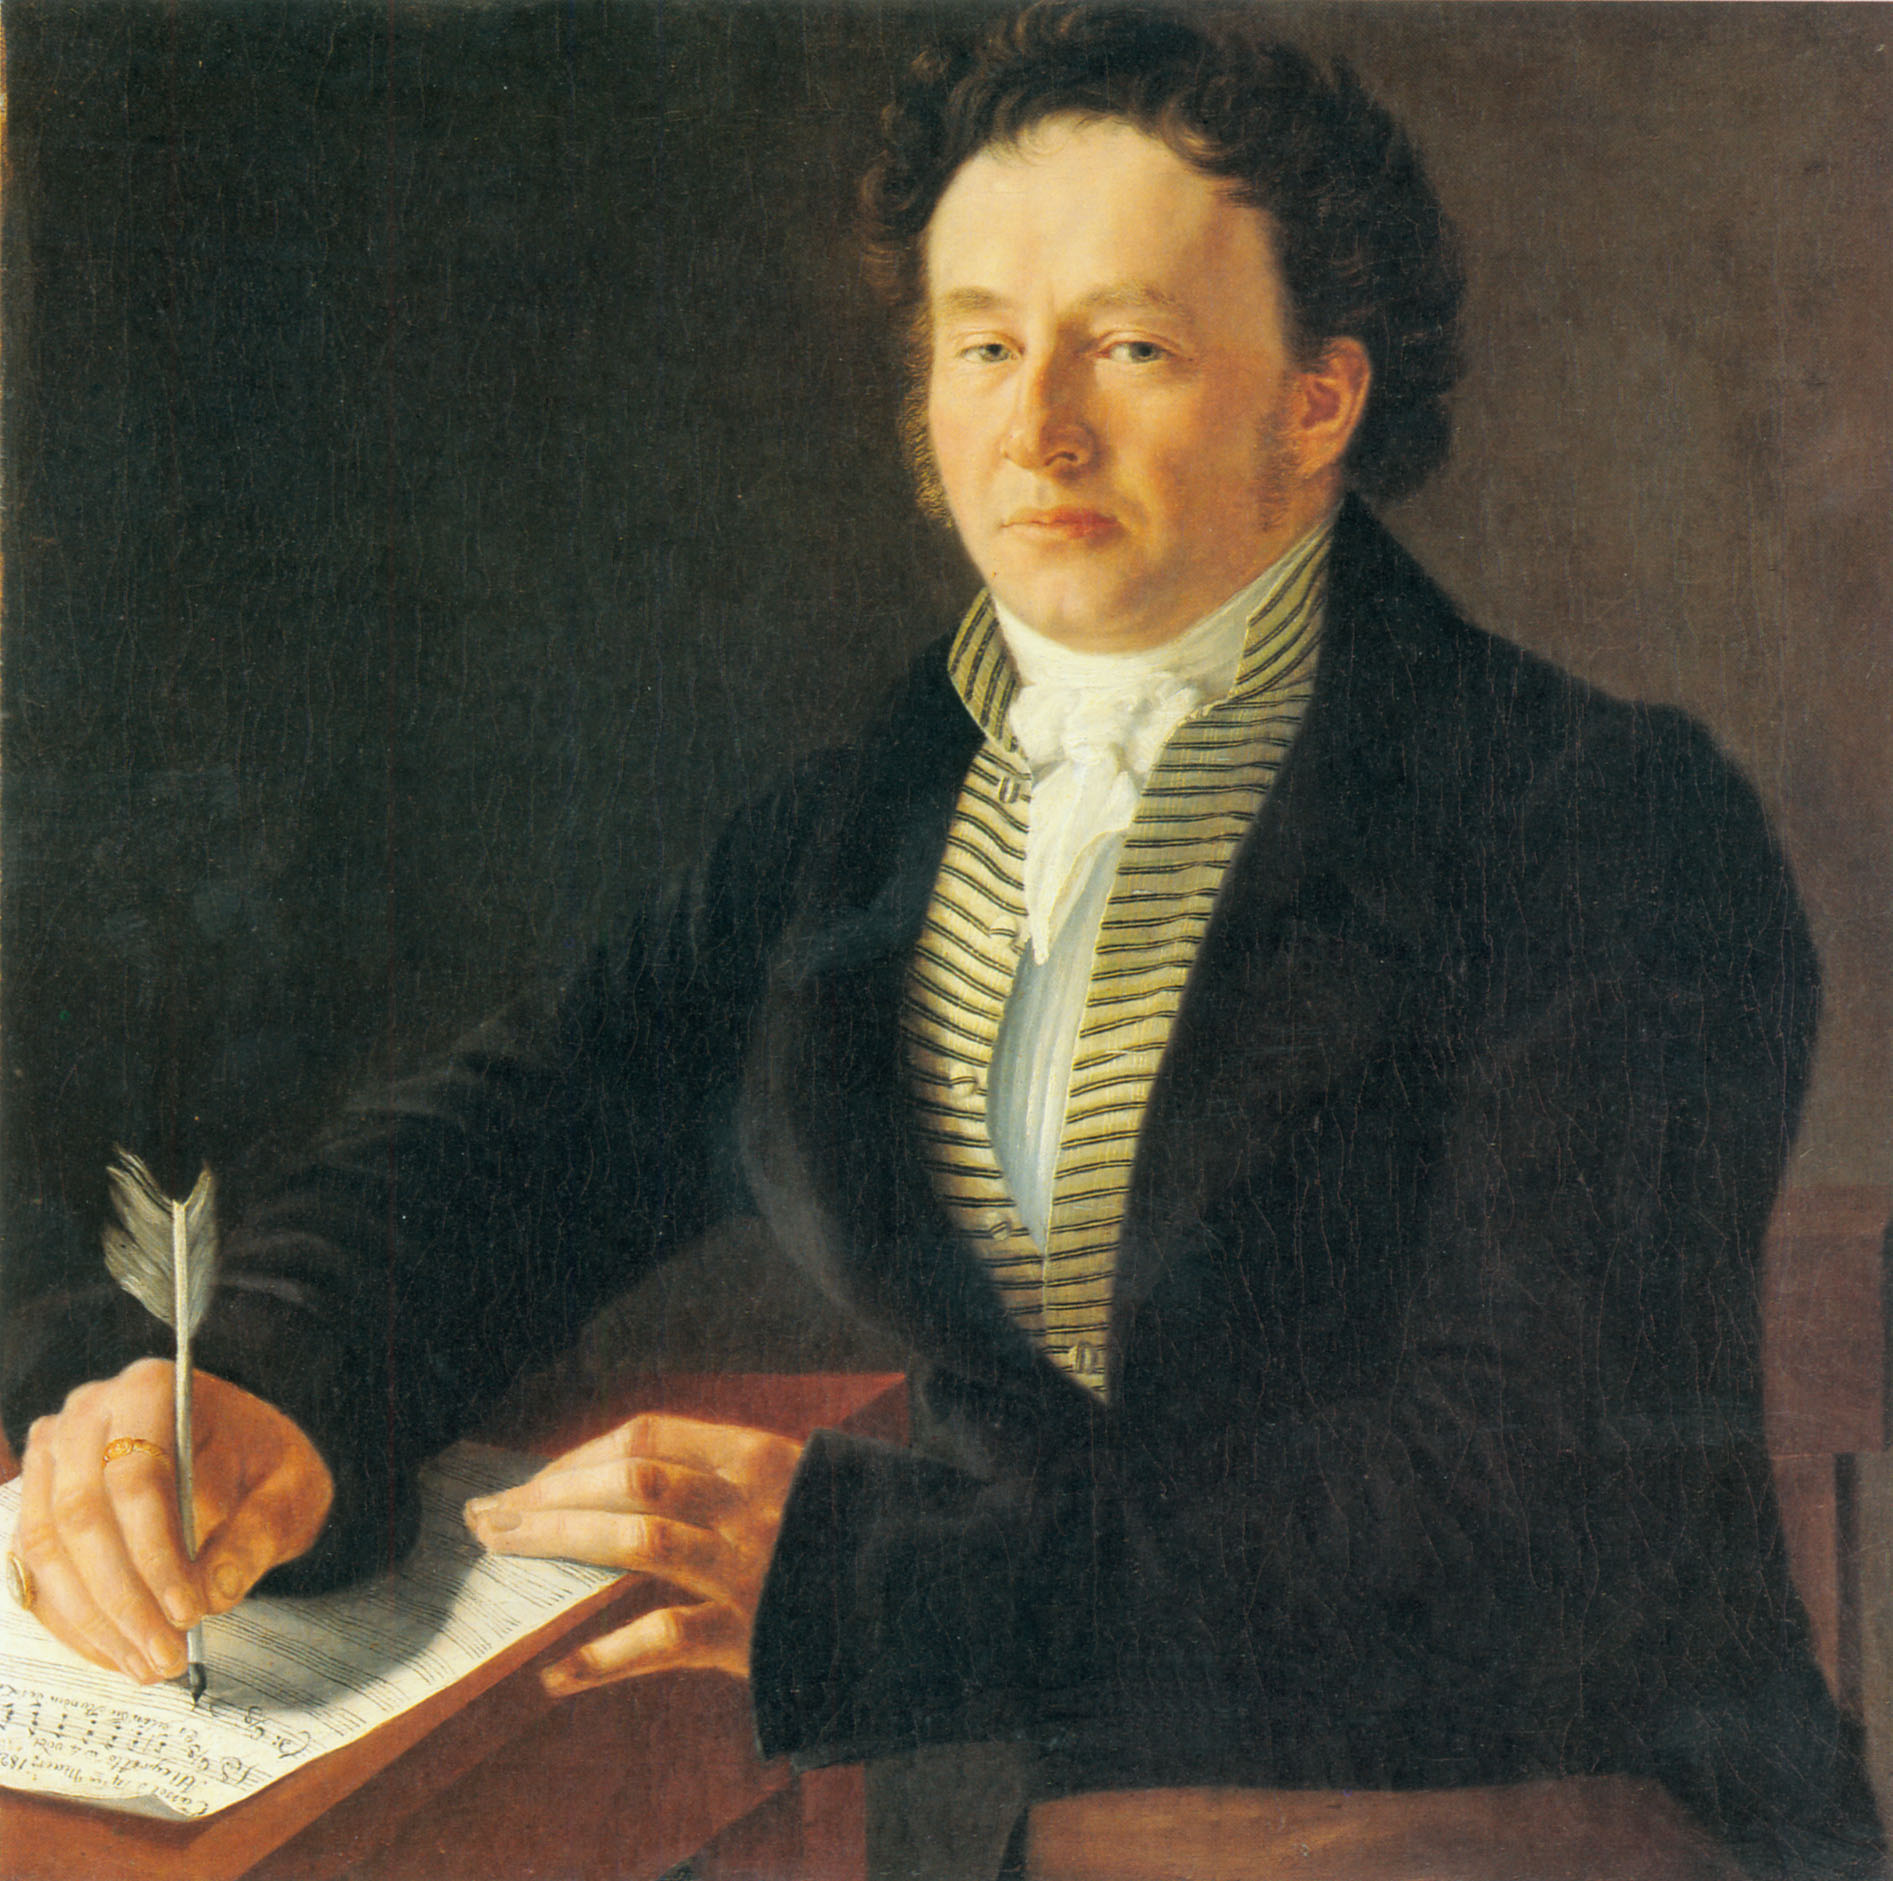 Portrait des Komponisten Ludwig Spohr 1824 in Kassel oil on canvas 64 x 64 cm